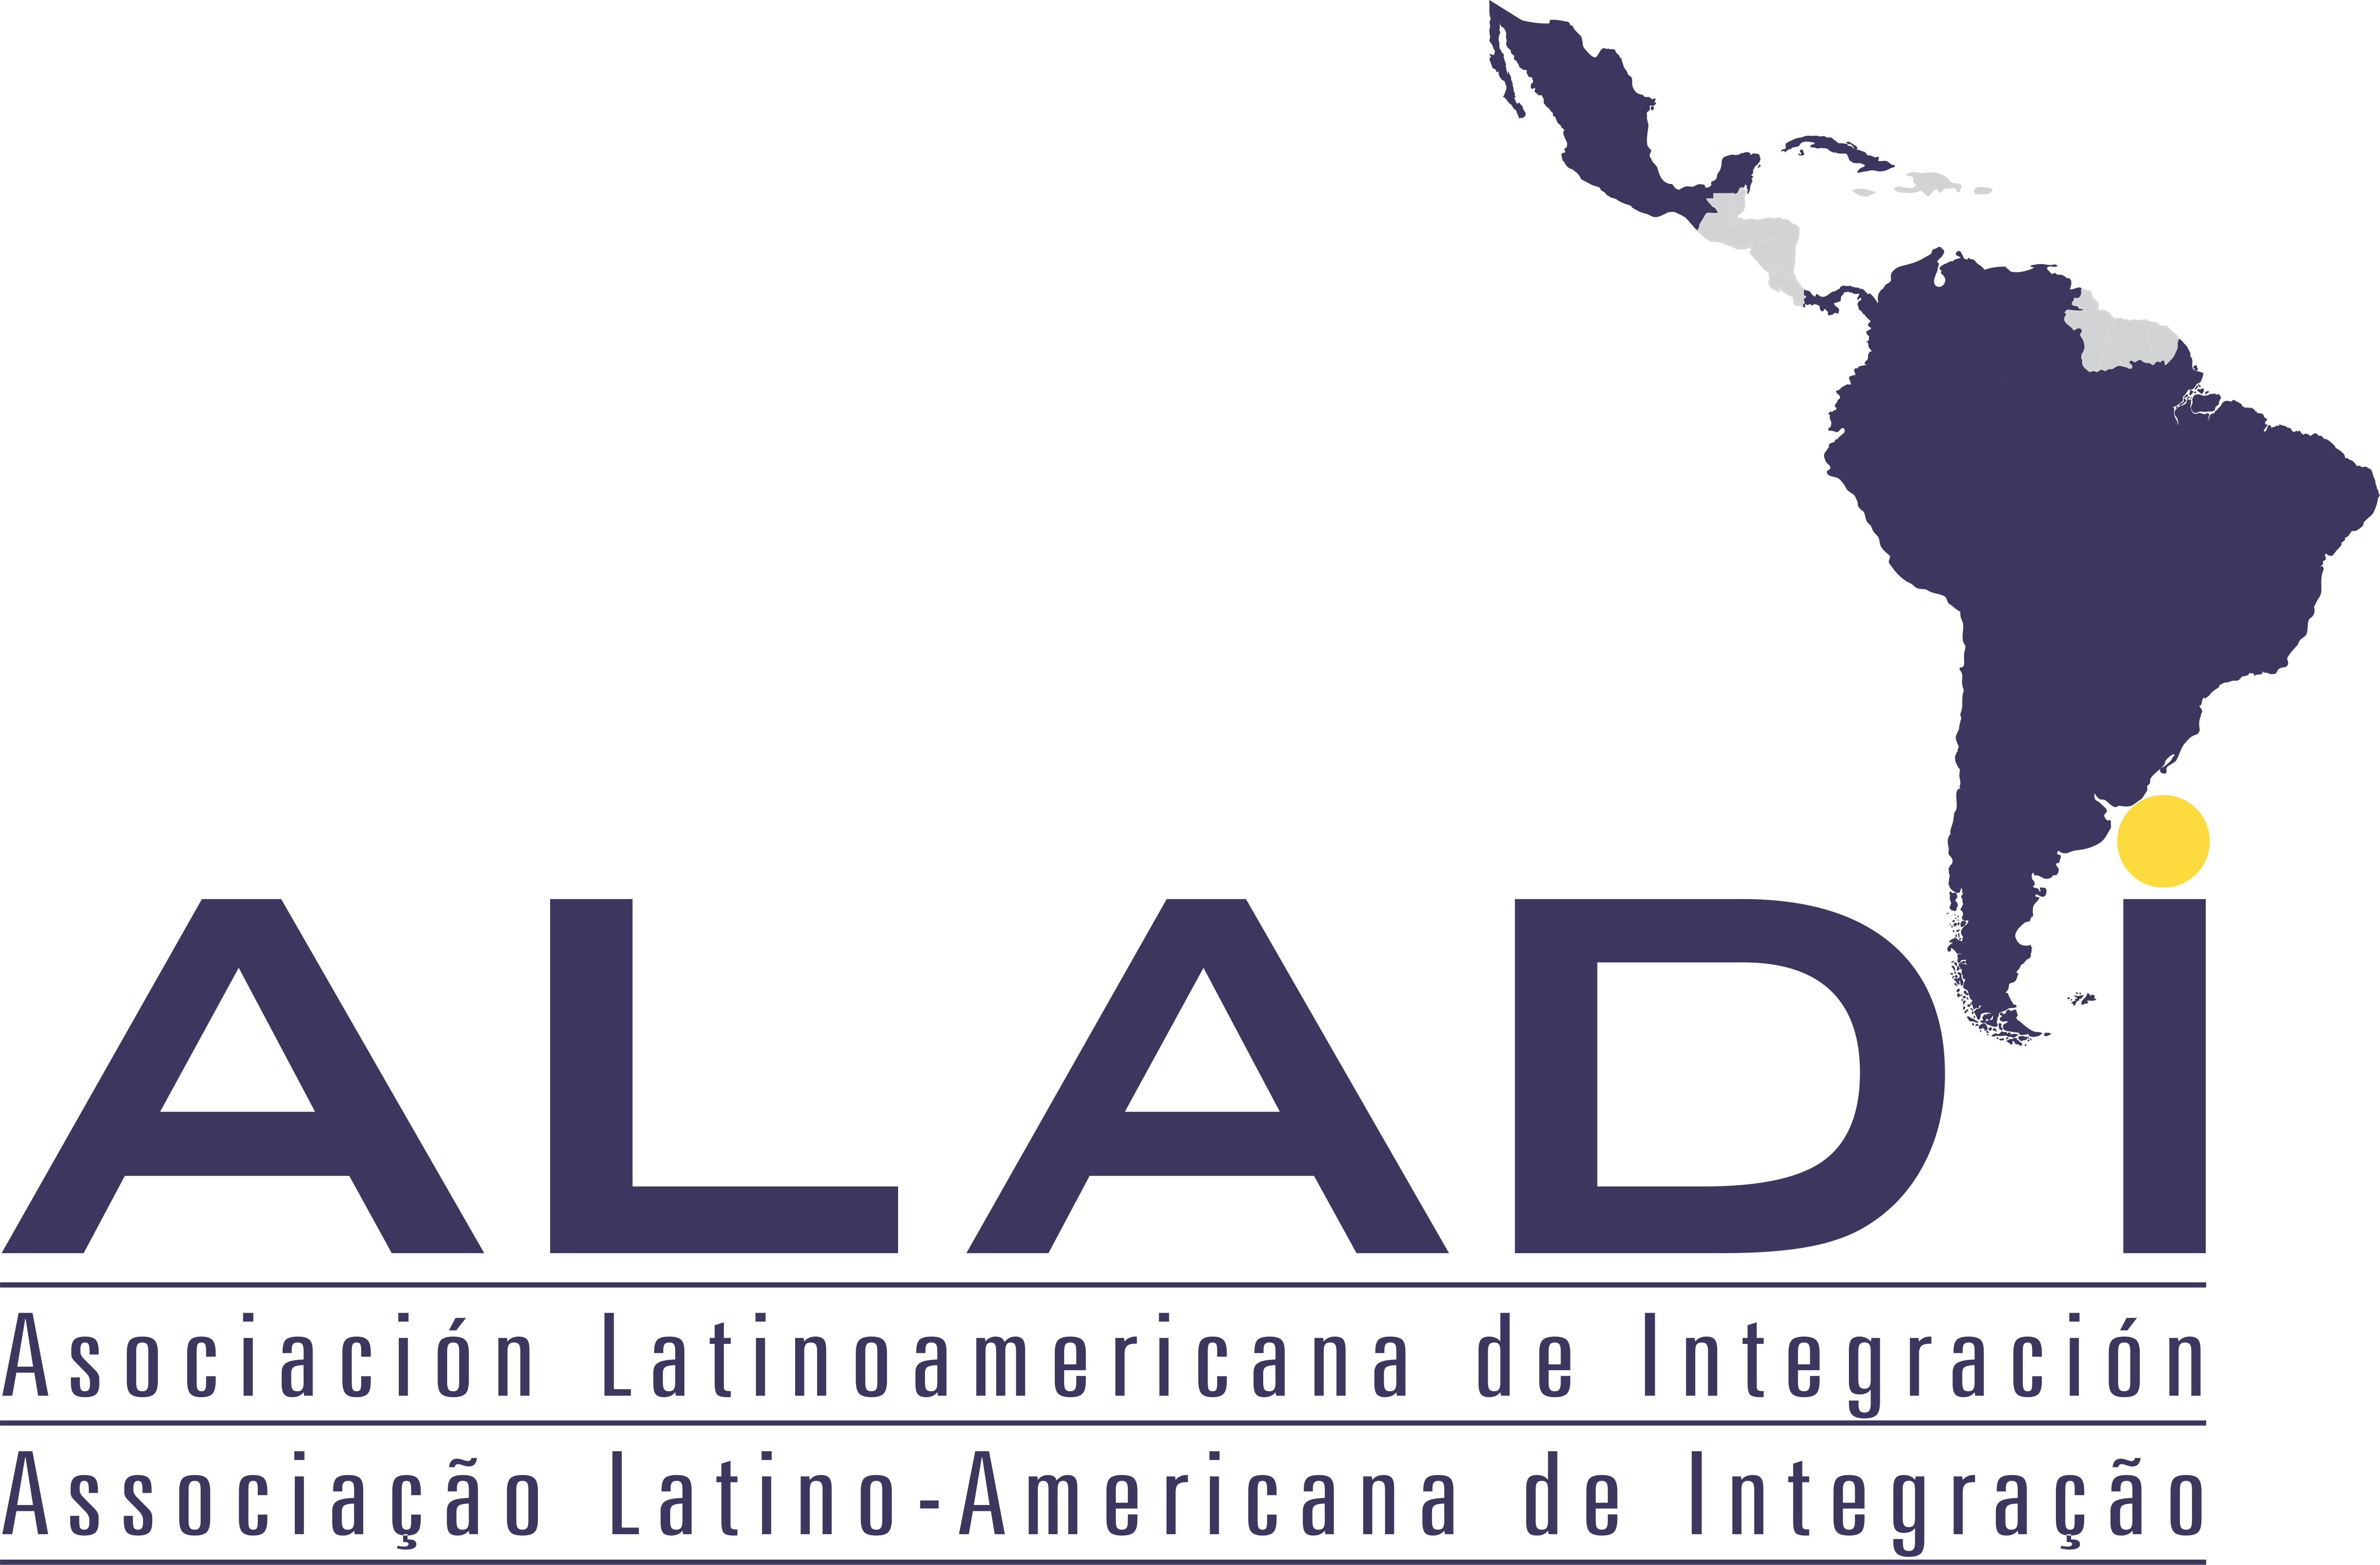 logo for Latin American Integration Association